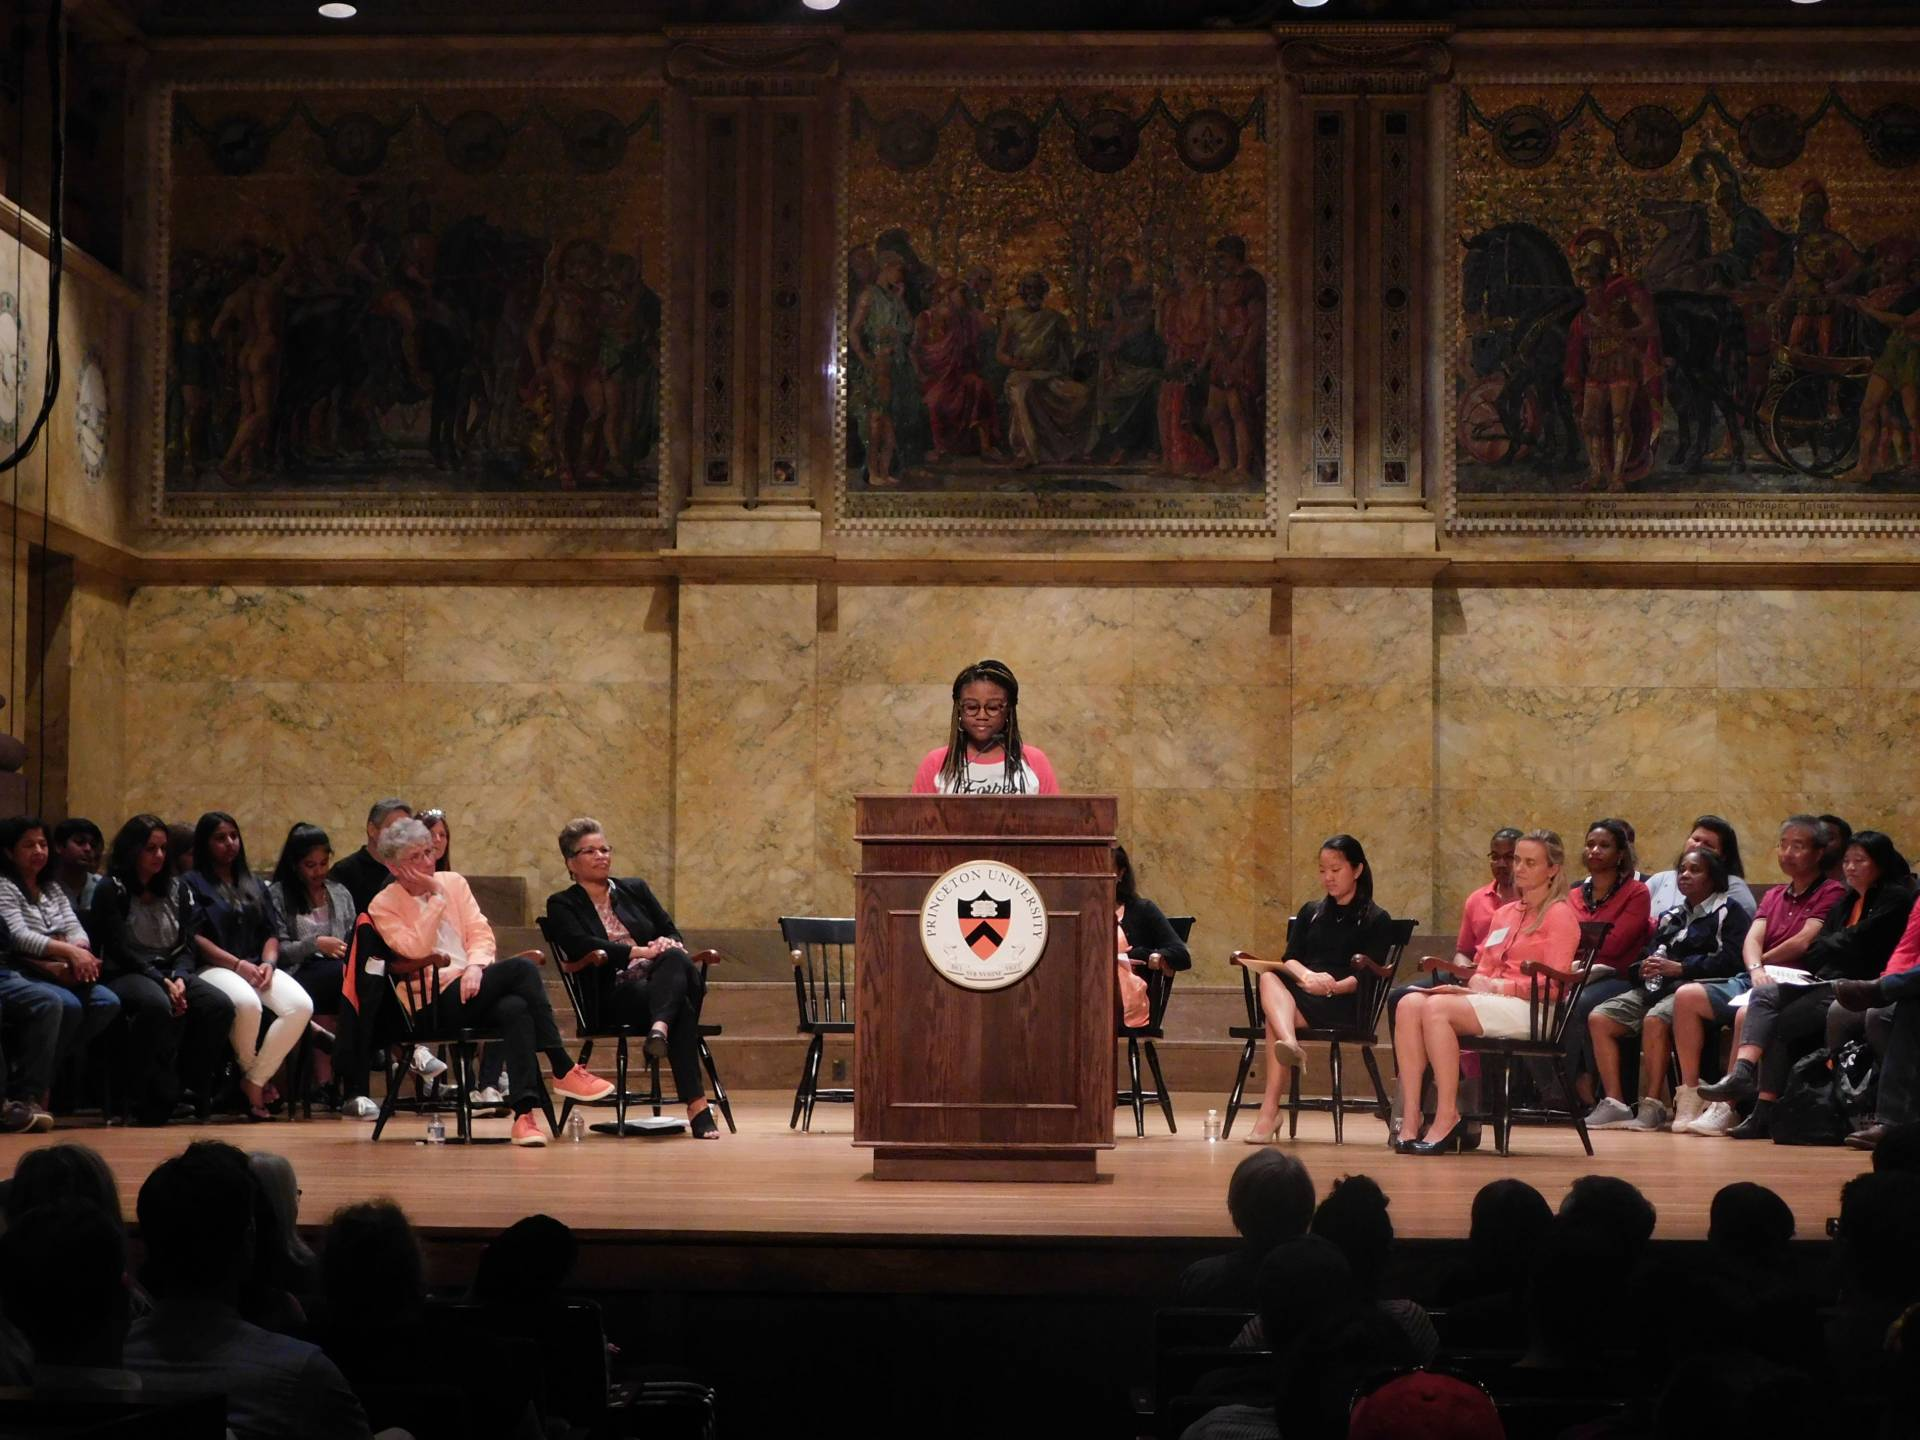 Myesha Jemison speaks to an audience family members during the Orientation welcoming program at Richardson Auditorium.